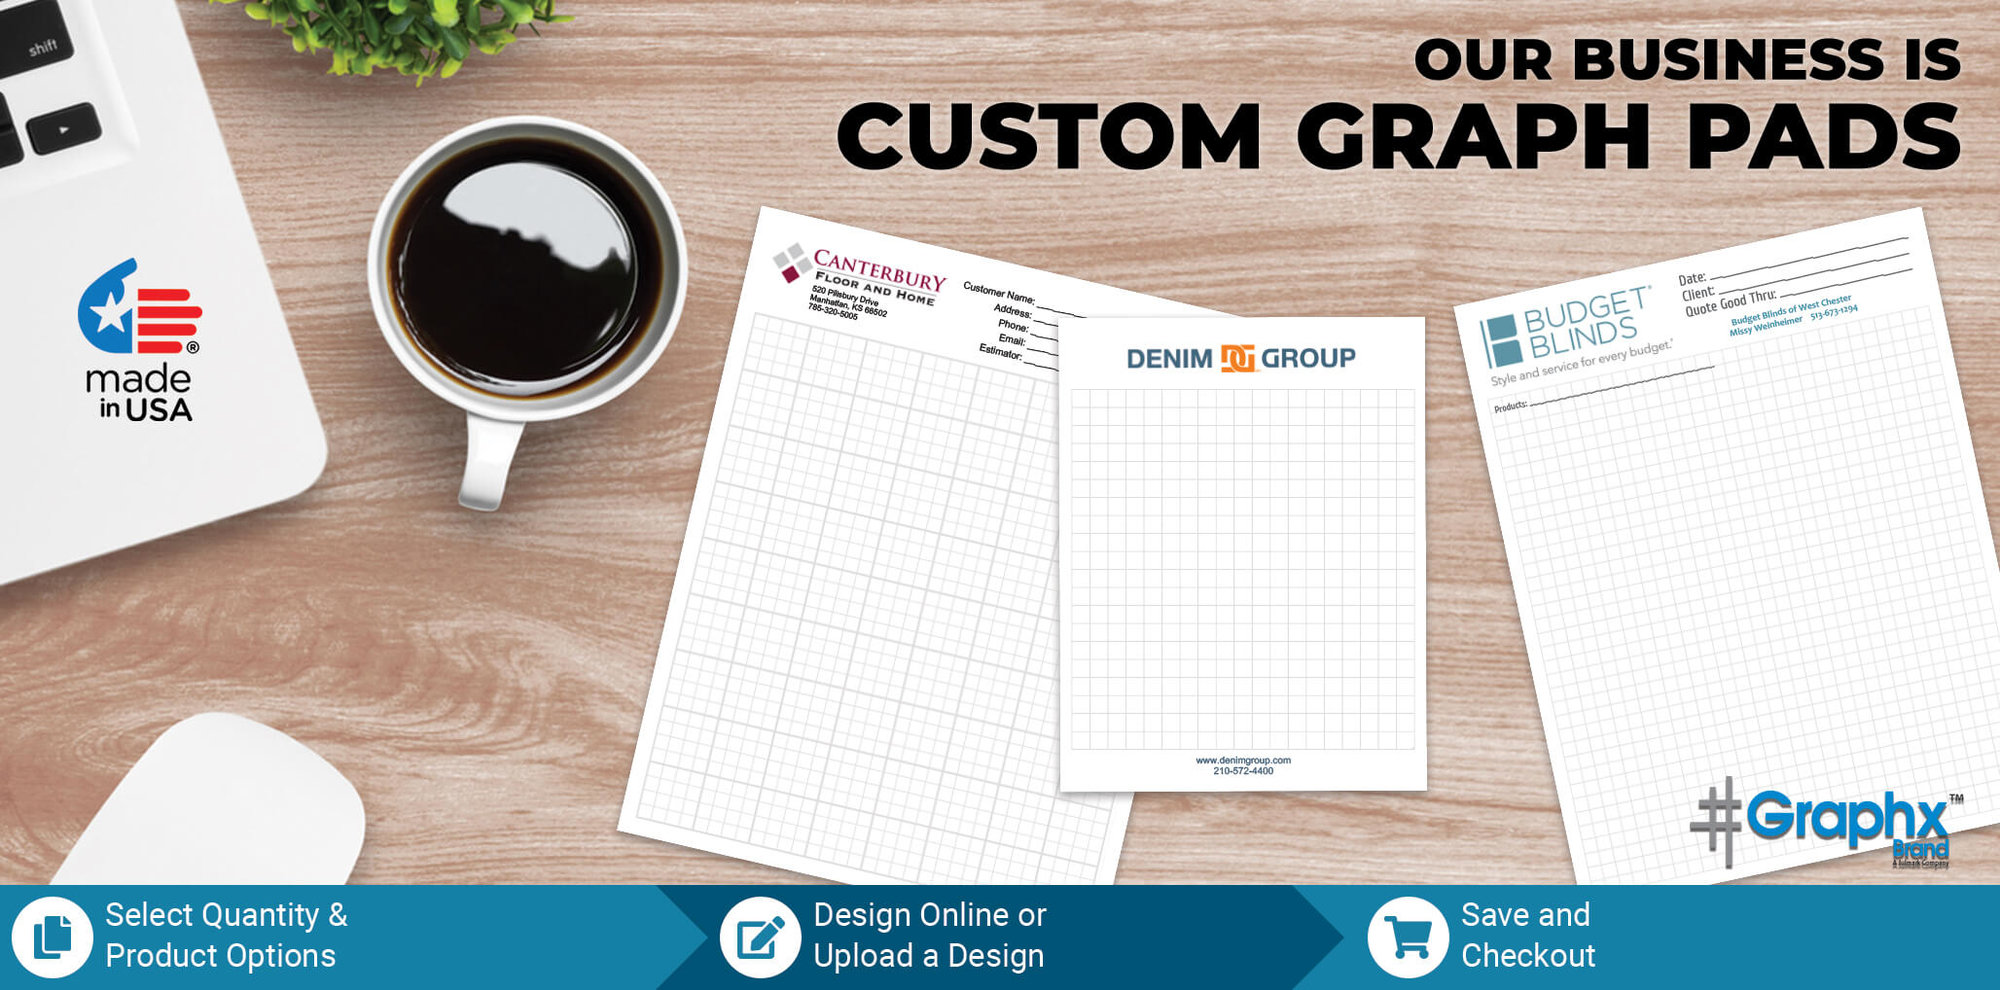 https://printpps.com/images/products_gallery_images/Graph-Pads_Product-Page-Banner_1_6686.jpg